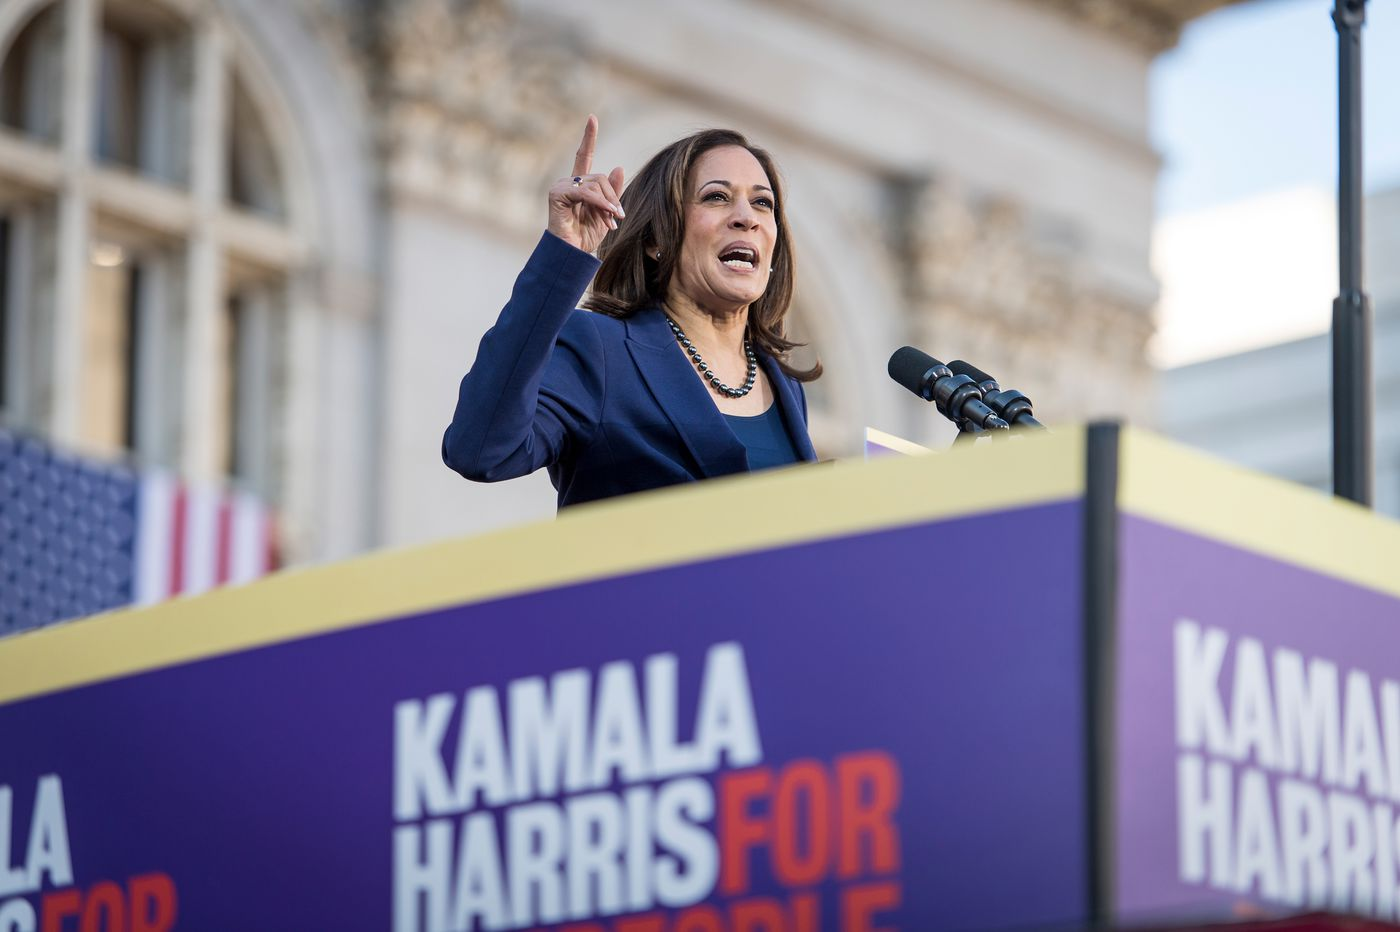 'And I did inhale': Kamala Harris admits marijuana use